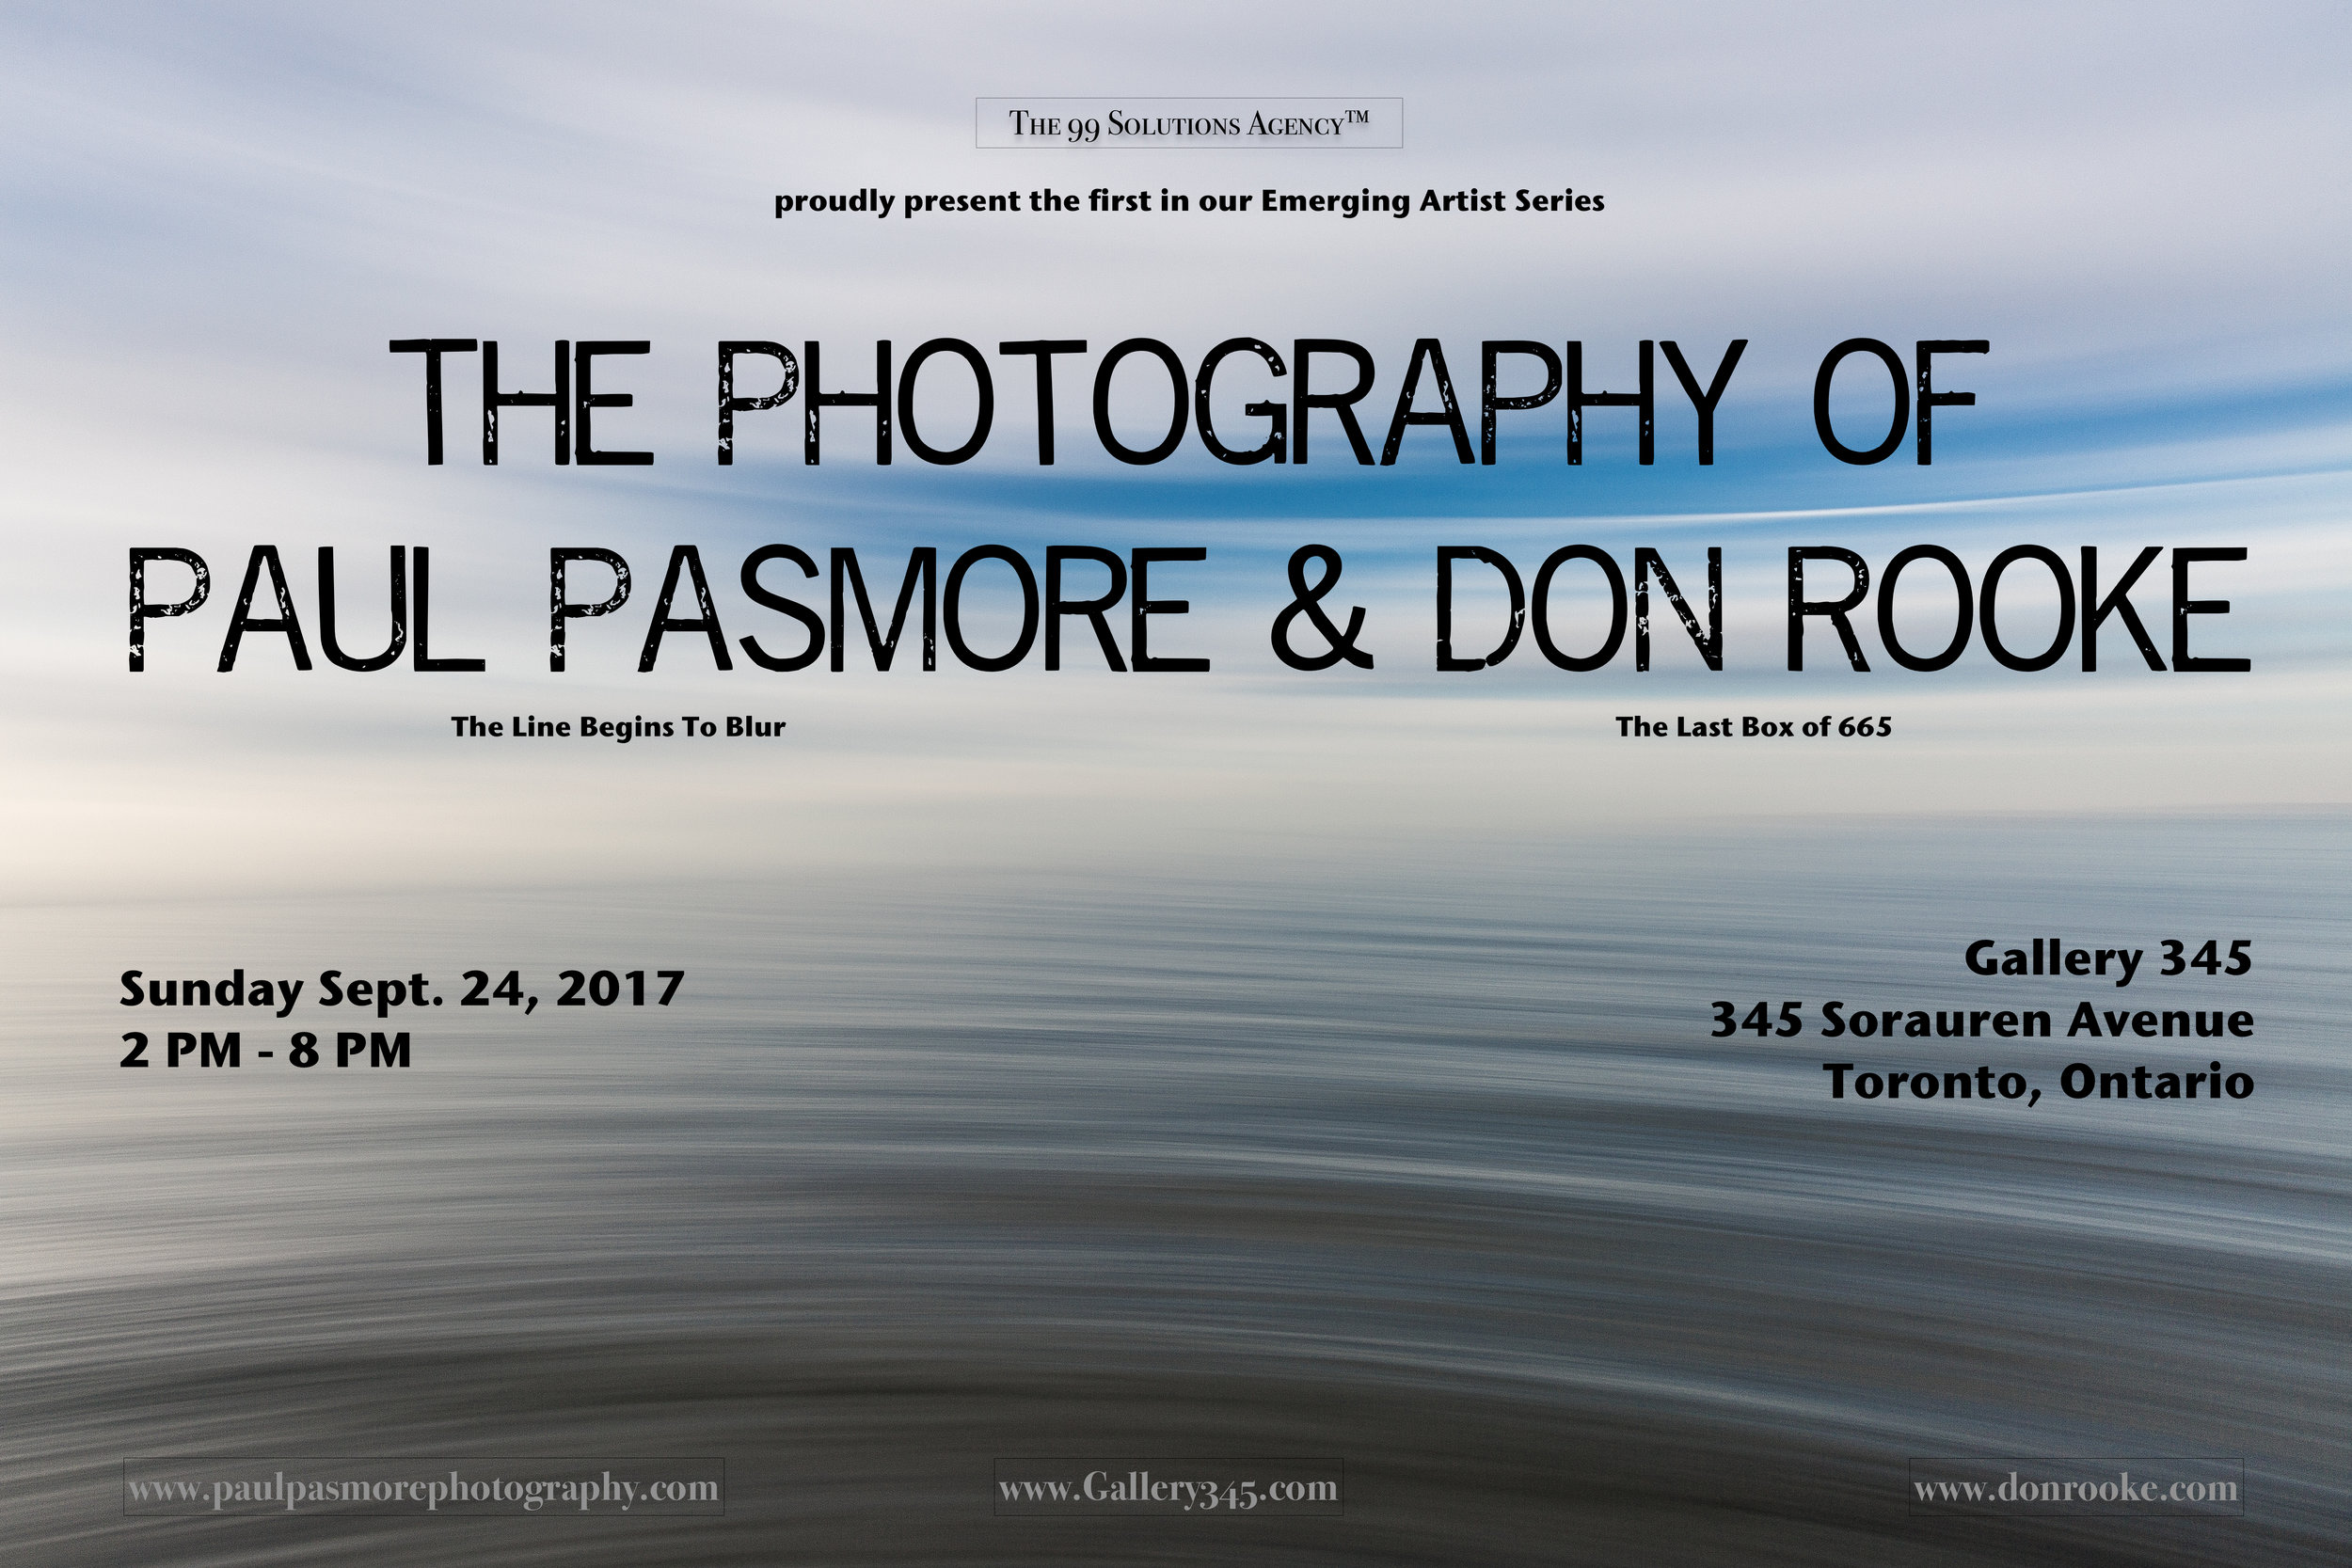 - My images will be framed and hung alongside the stunning photography of Don Rooke at Gallery 345 in Toronto ON Canada on Sept.24, 2017 from 2 - 8 PM. Hope to see you there !